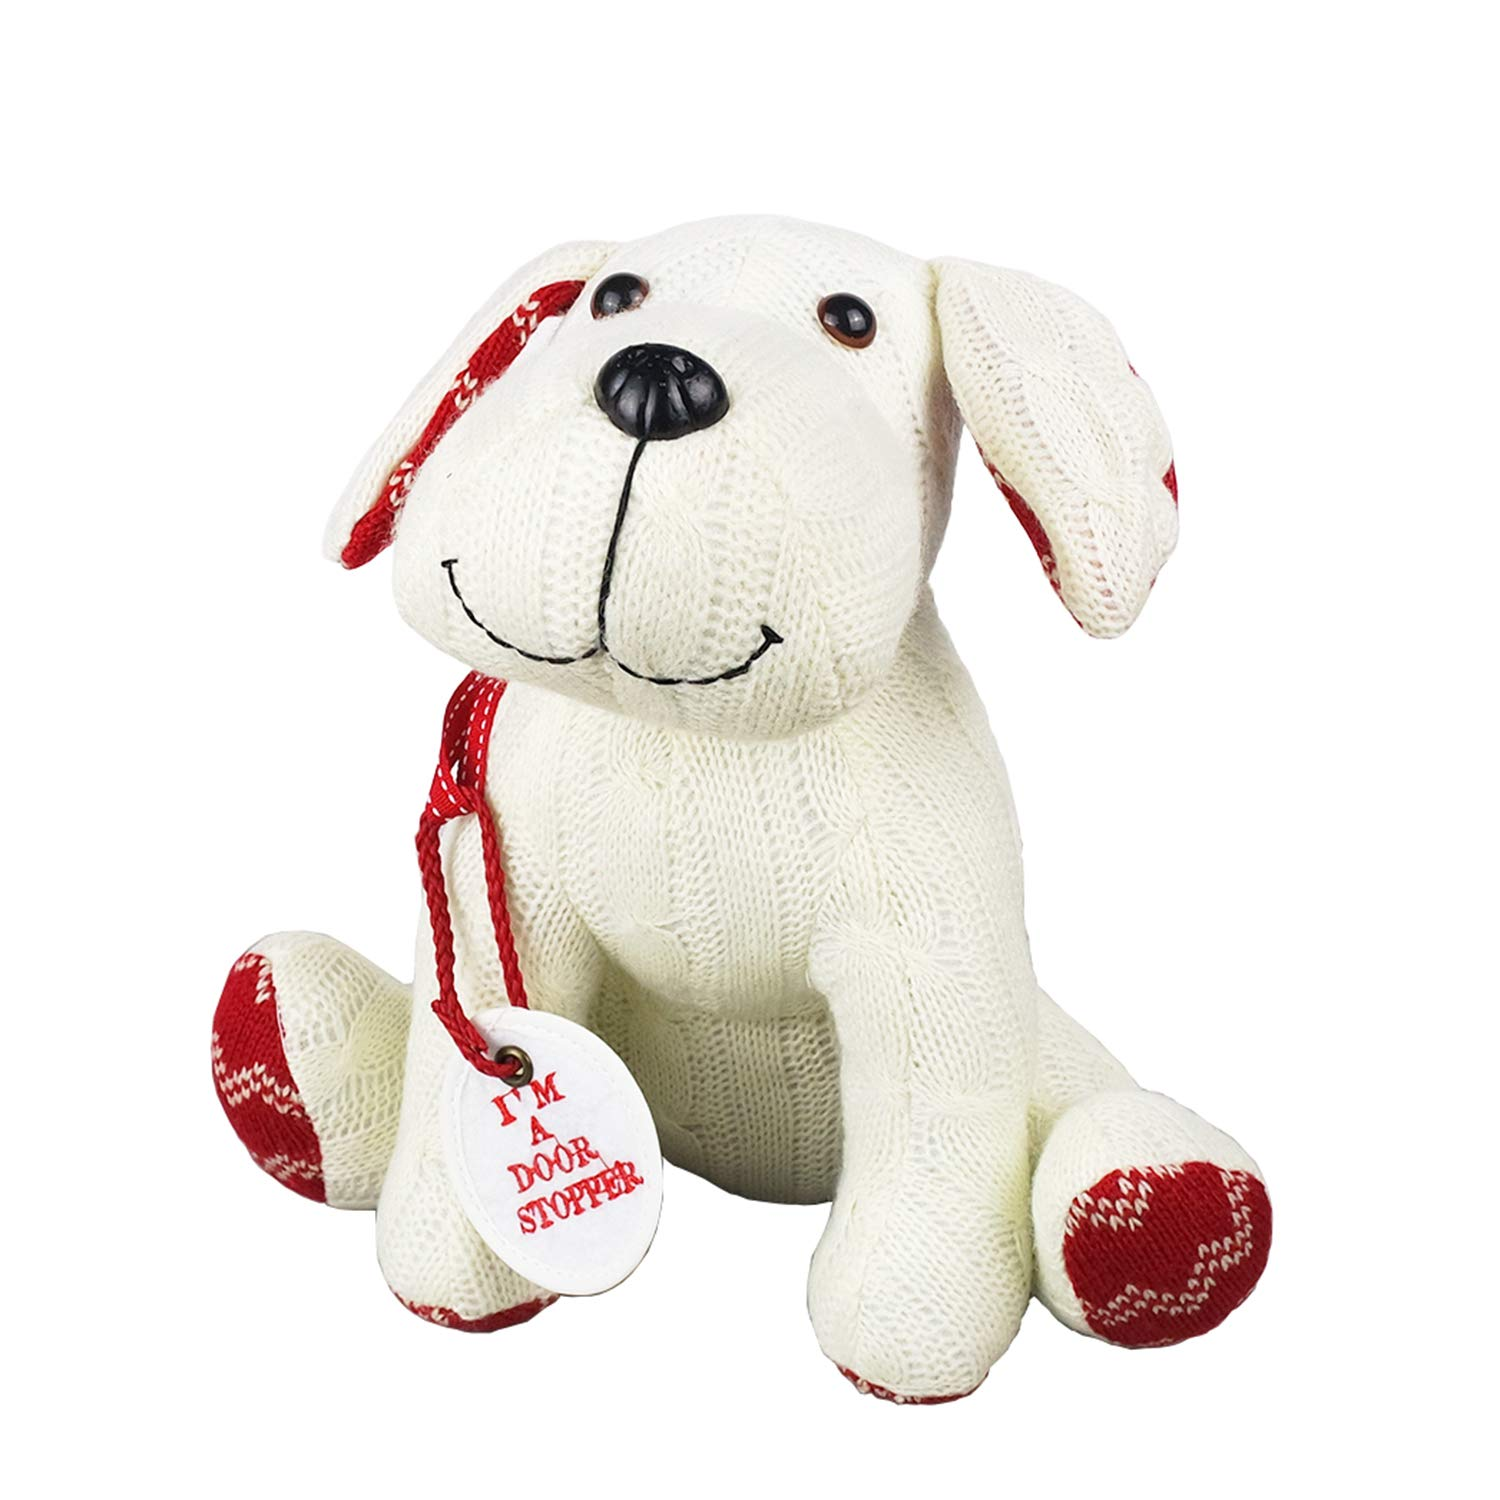 Stuffed Animal White Dog Door Stopper 1.73lb Home Decor Cable Knit Pattern